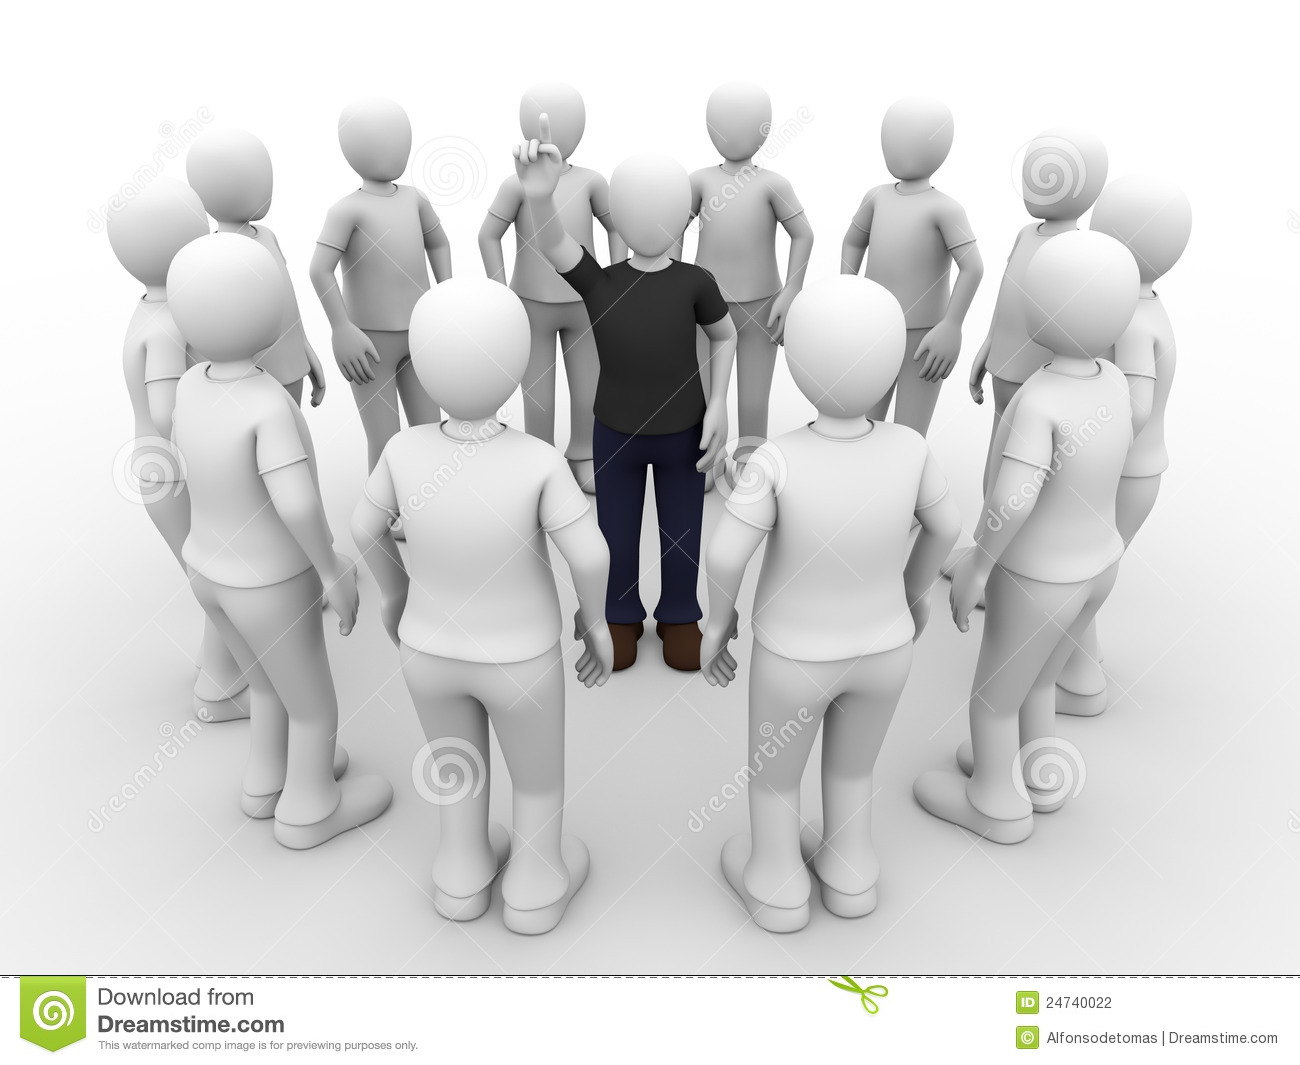 """""""We Are Surrounded By a Nation of People Who Will Not Step Out of Their Perceived Reality"""""""